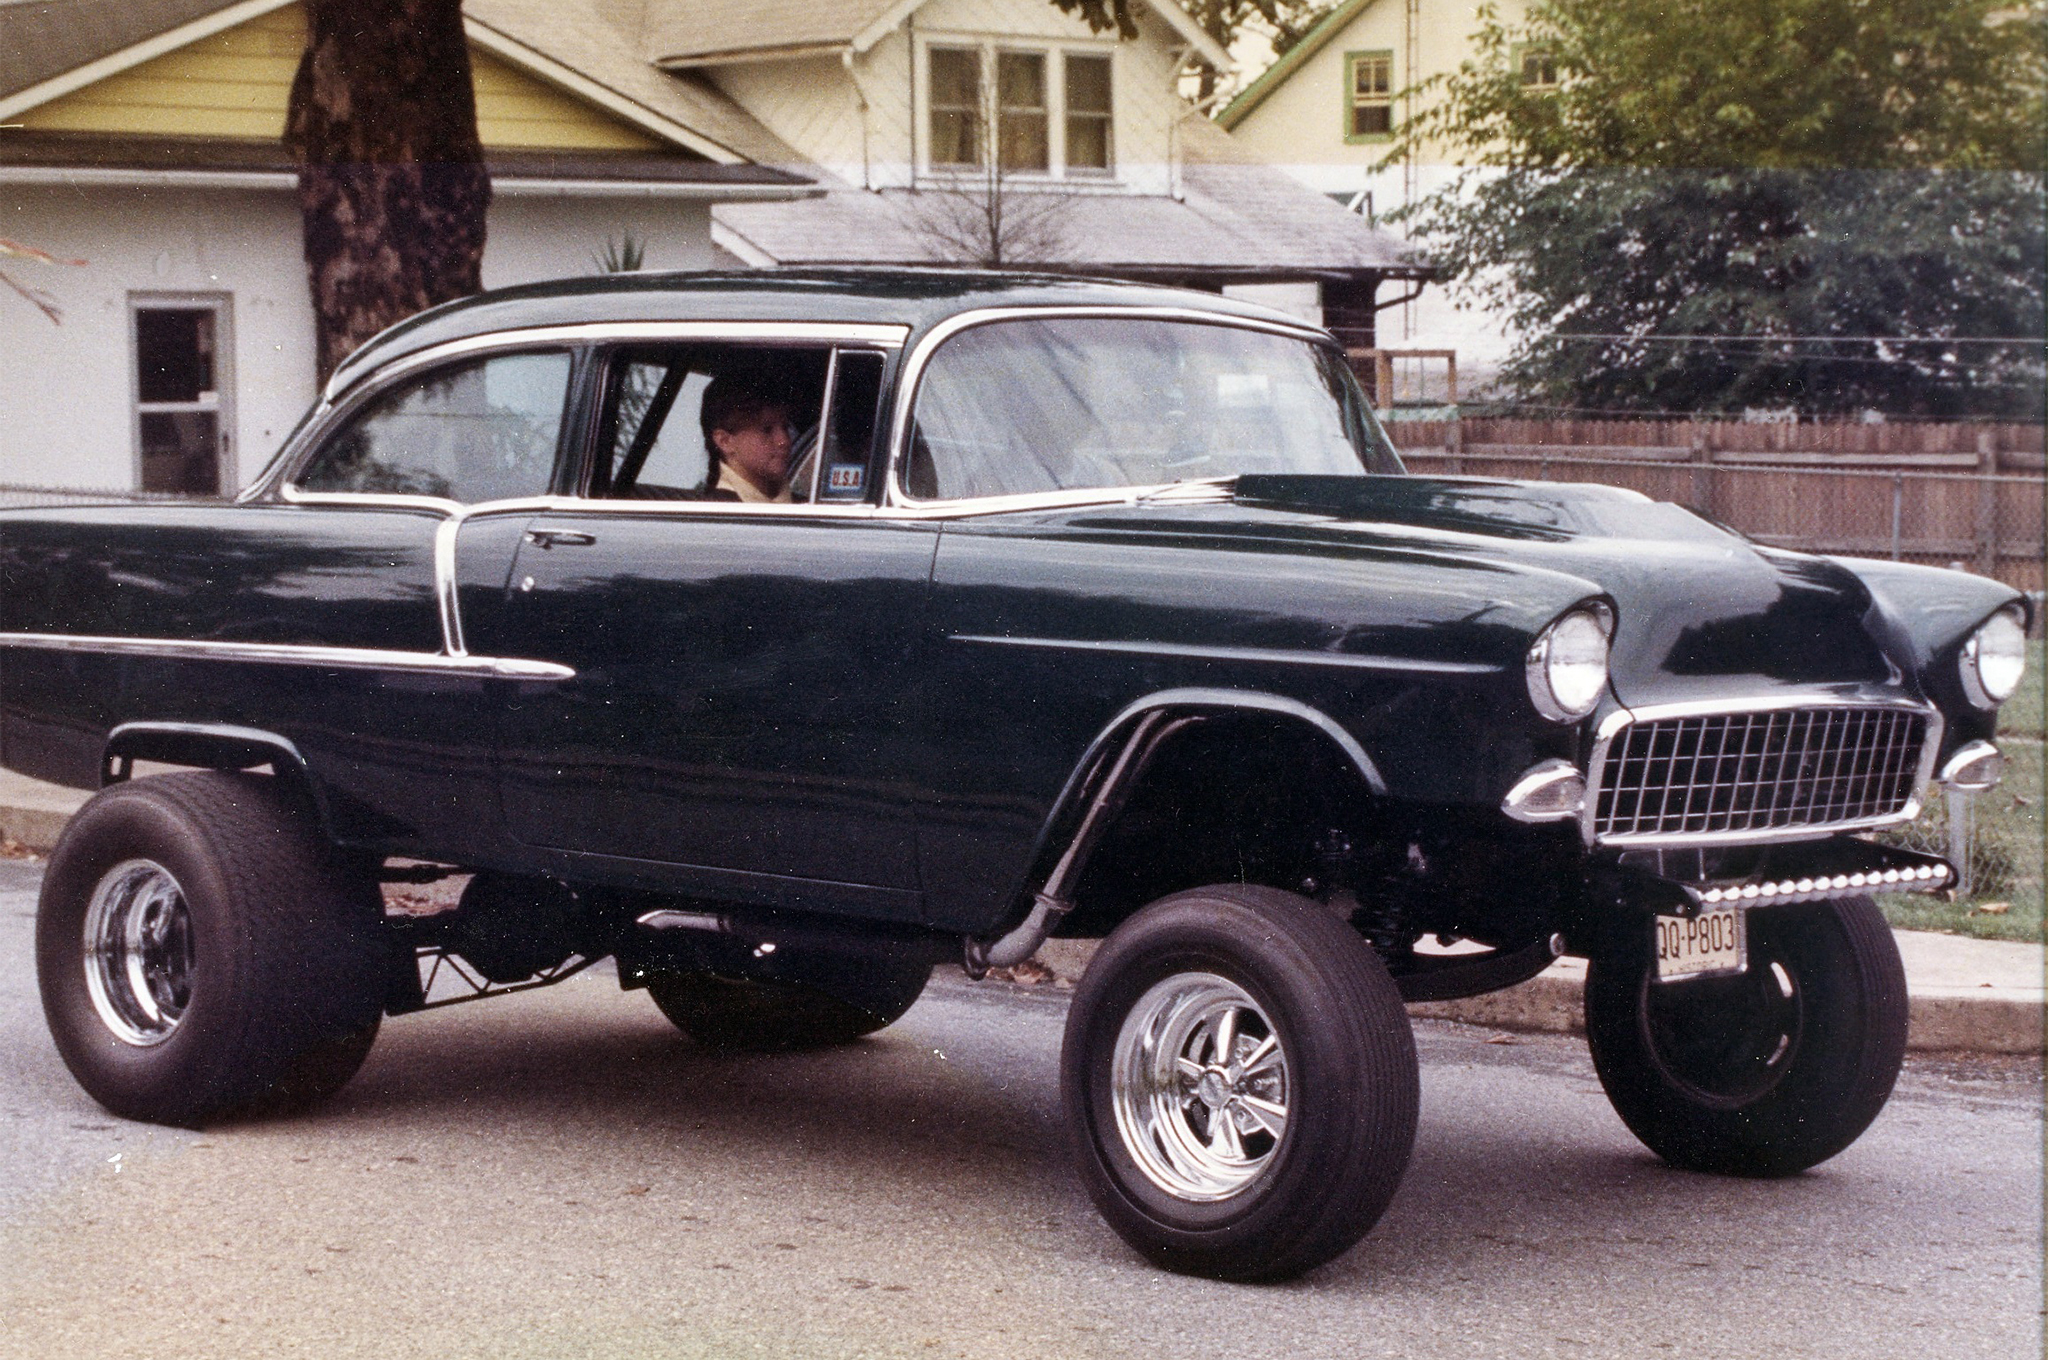 1955 Chevy Gasser Still On The Jersey Streets After 40 Years Hot